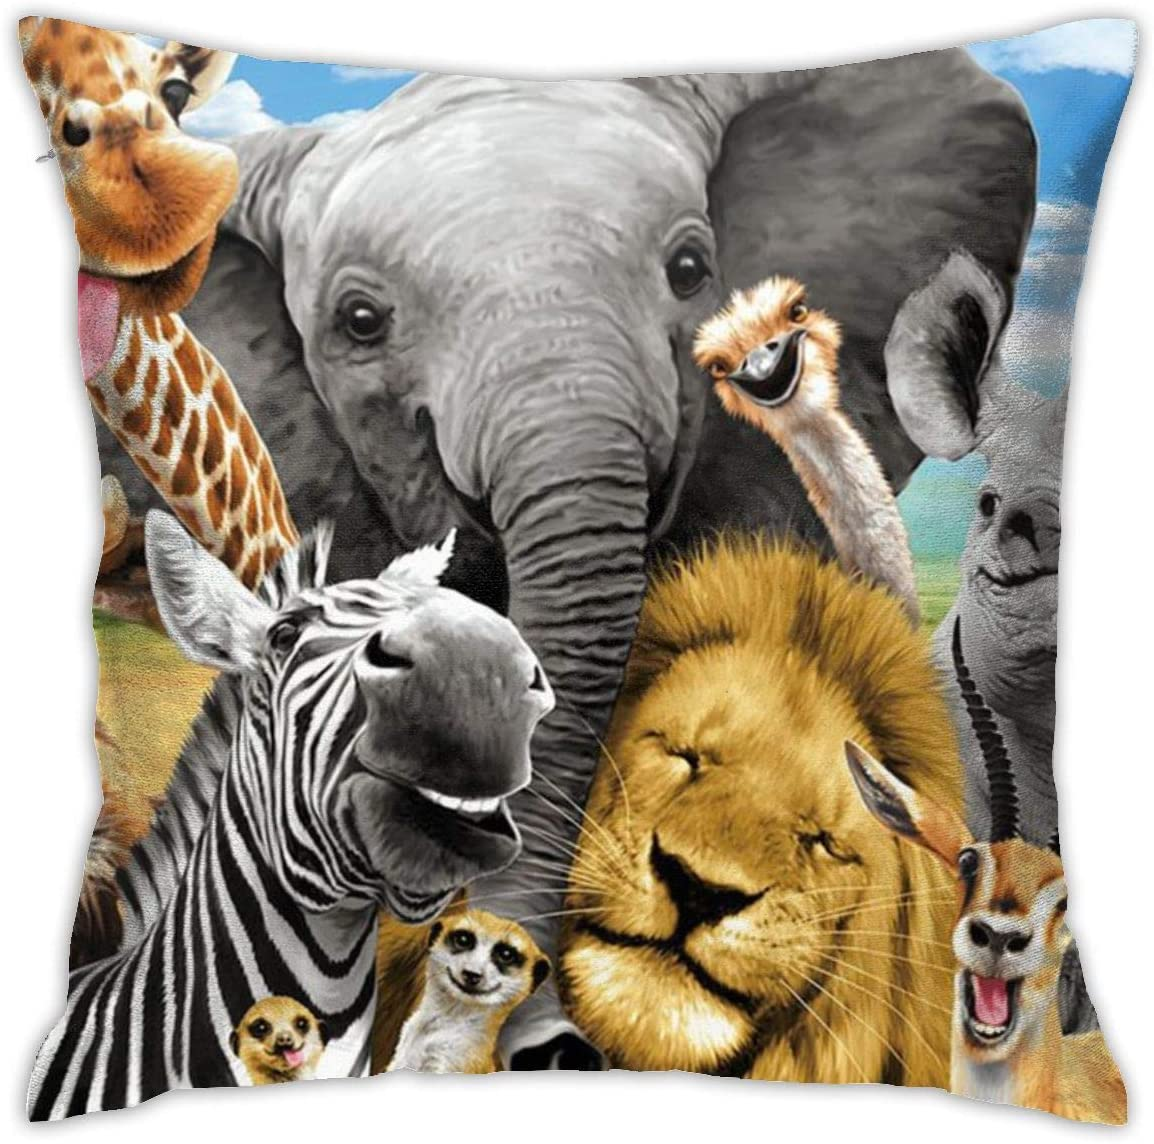 antfeagor Safari Animals Pillow Covers Decorative 18x18 in Daily Sofa Throw Pillow Case Cushion Covers Zippered Pillowcase